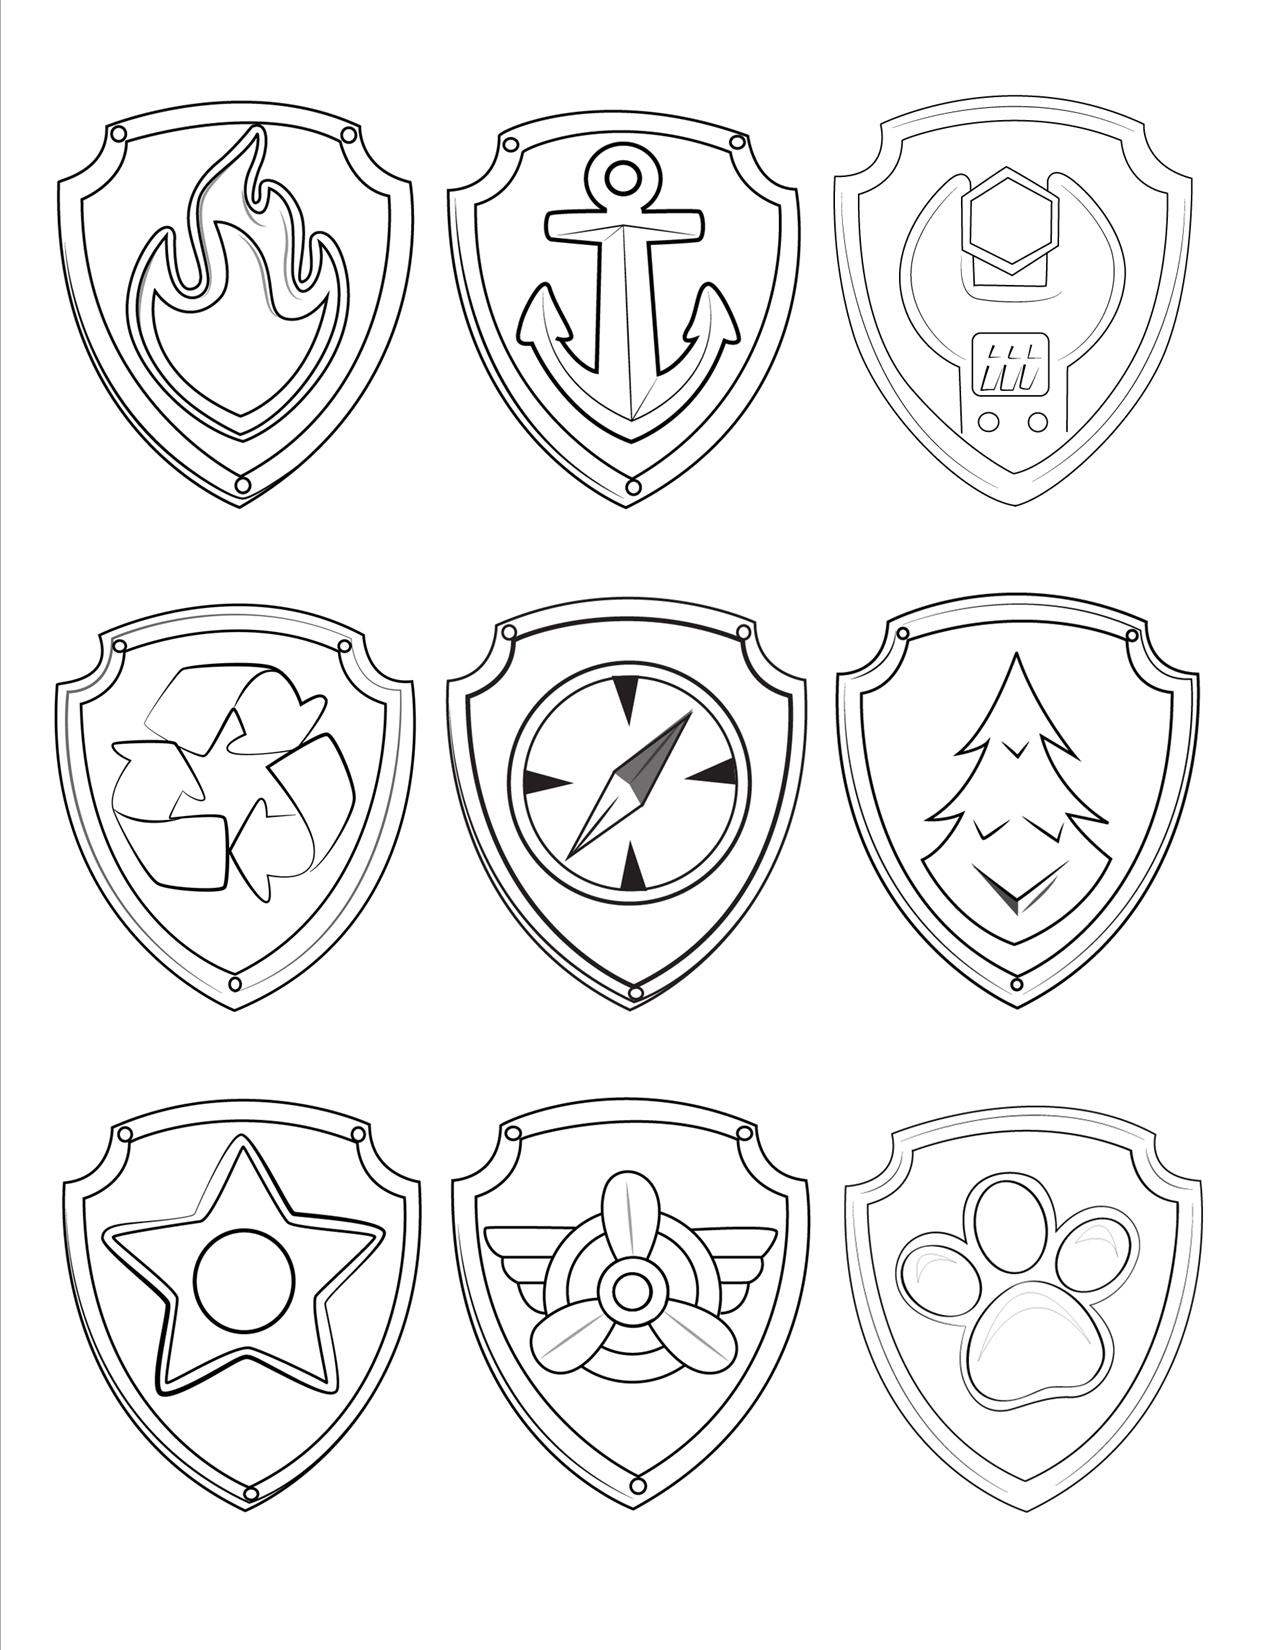 paw patrol badges coloring pages rocky badge coloring page free paw patrol coloring pages coloring patrol badges paw pages